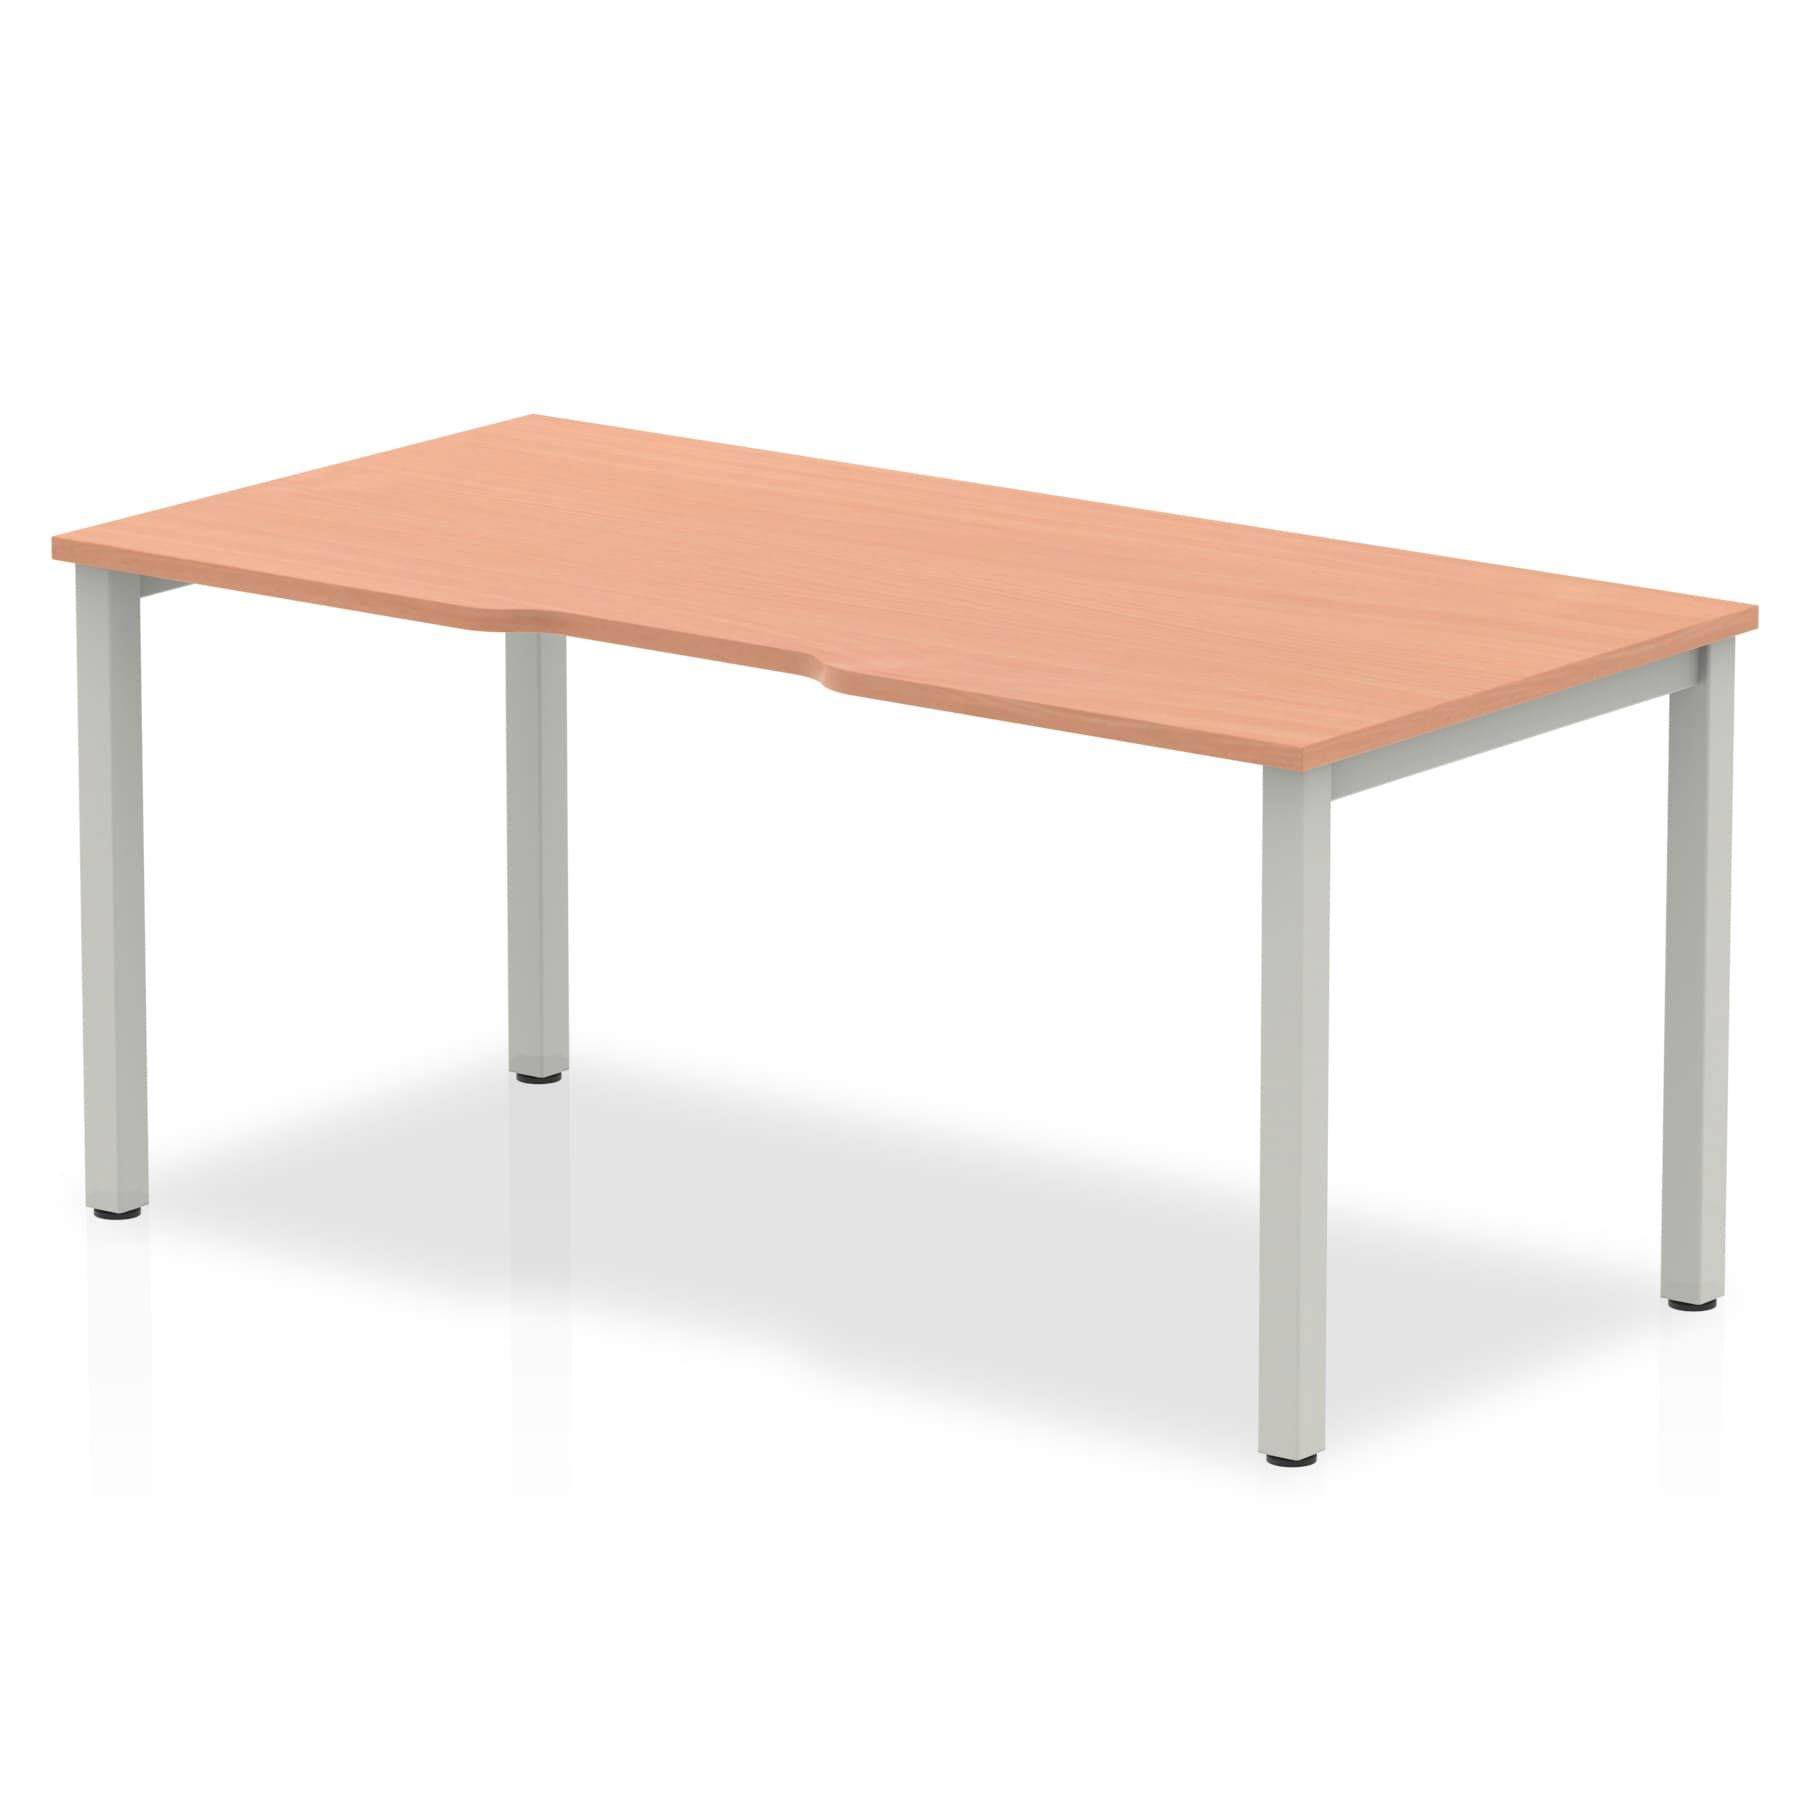 Single Silver/White Frame Bench Desk 1200